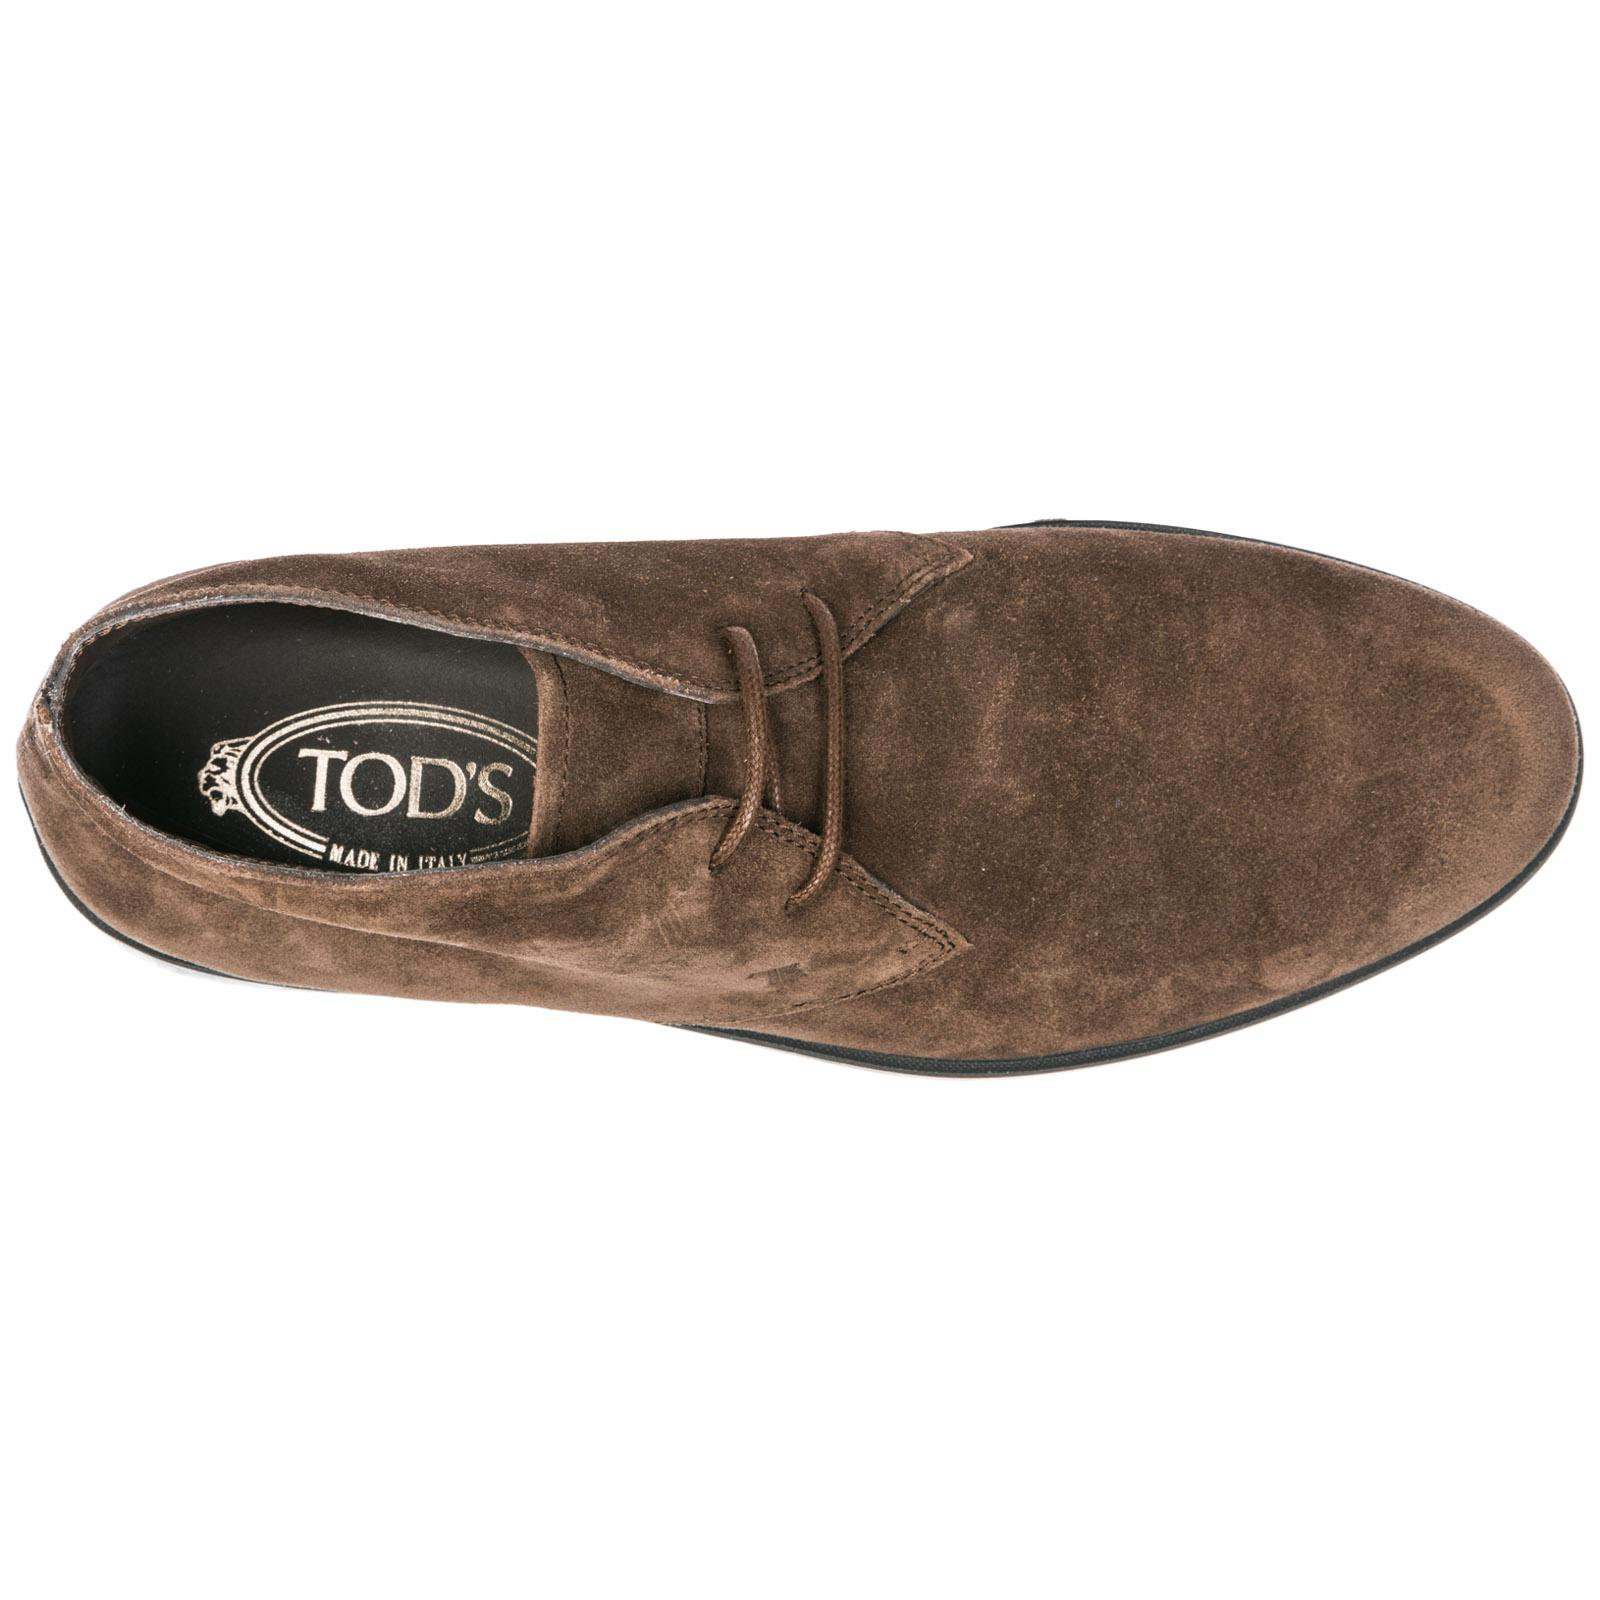 07f019890 Tod s - Brown Suede Desert Boots Lace Up Ankle Boots for Men - Lyst. View  fullscreen